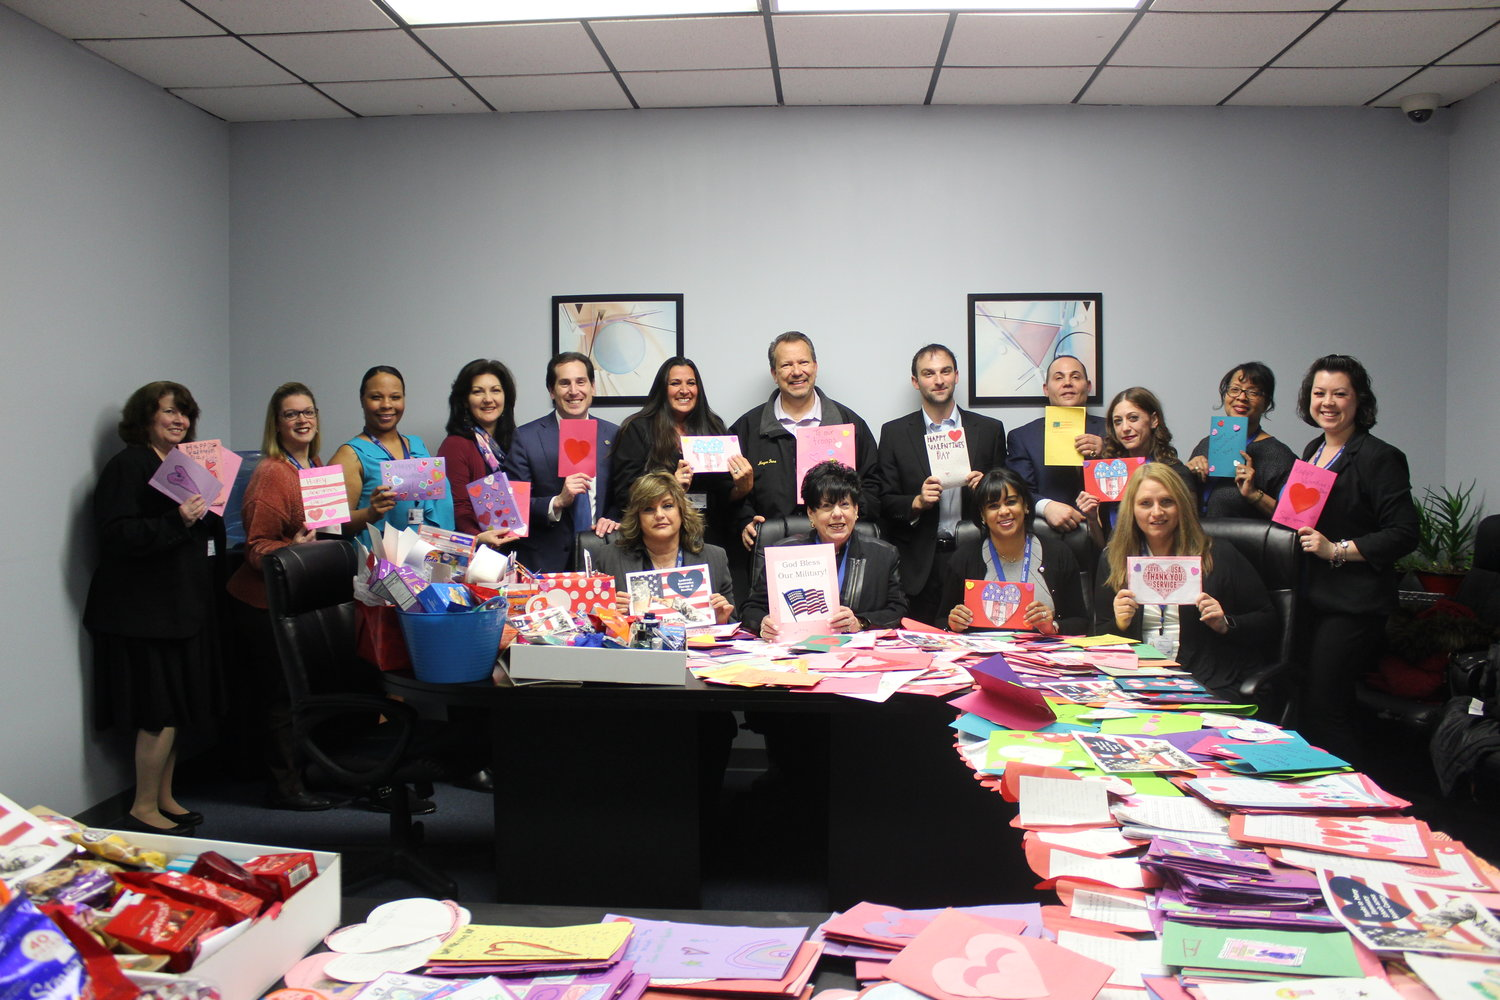 Genine Chiano, sixth from top left, worked with representatives such as SARA Companion HomeCare Services, Lynbrook Restorative Therapy & Nursing, Sen. Todd Kaminsky's office, the Village of Valley Stream and PUDOS to collect and deliver Valentine's Day cards and supplies to an air force troop in Afghanistan.